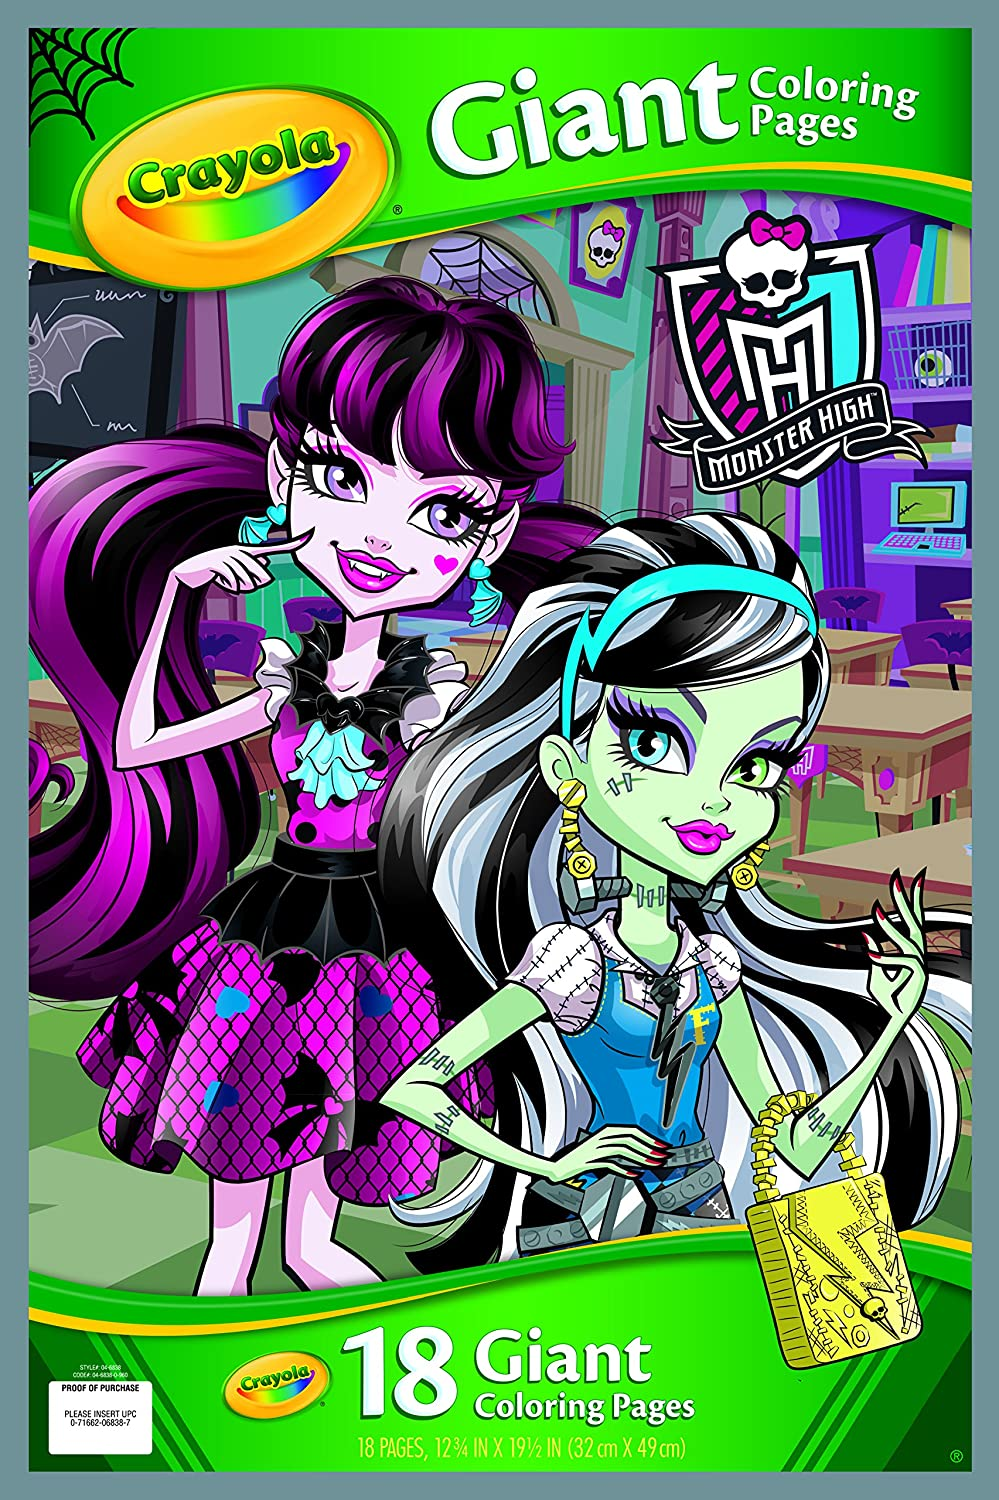 - Amazon.com: Crayola Monster High Giant Coloring Pages: Toys & Games